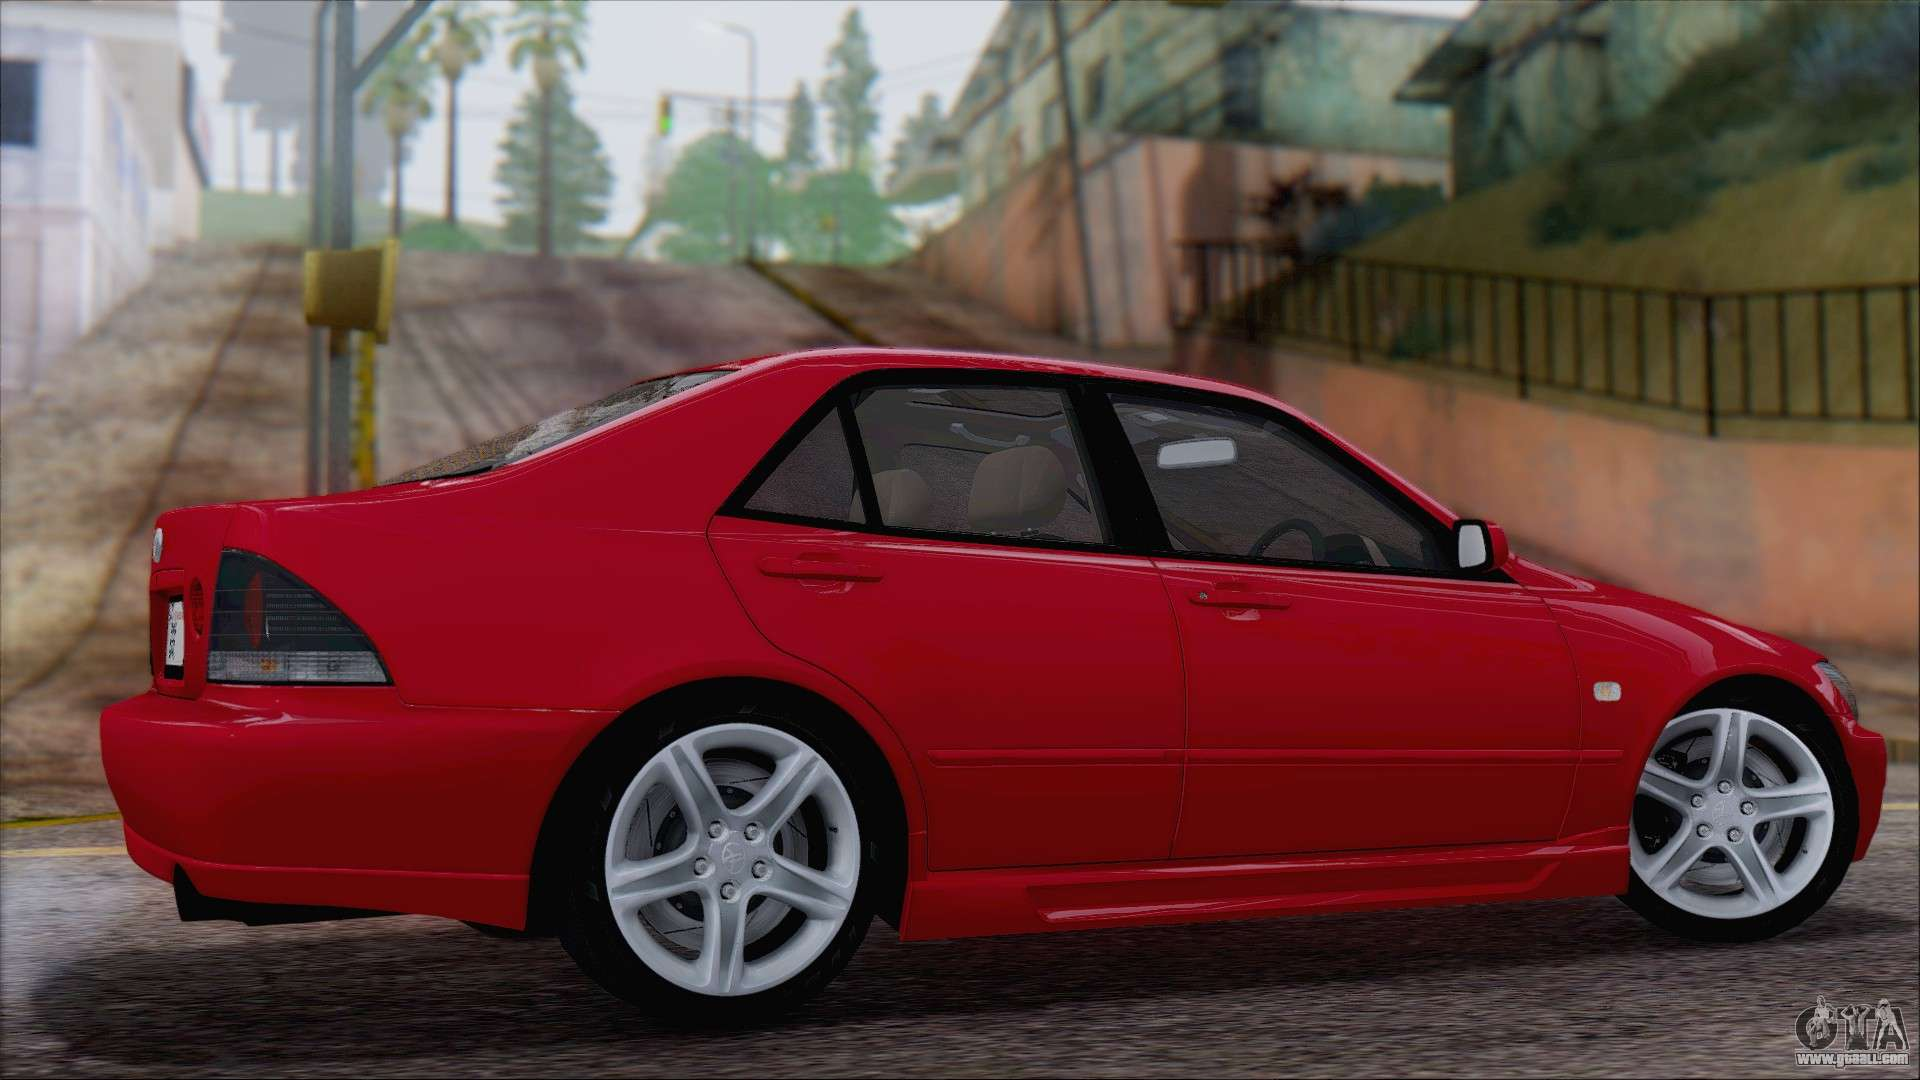 Monster Energy Toyota Mark Jzx Jdm Side Plastic Car Yellow Colors K Wallpapers El Tony Cars Design By Tony Kokhan   I V Tv Image moreover Gta Sa also Img also Toyota Yaris Bicolore Grigio E Nero together with . on toyota altezza